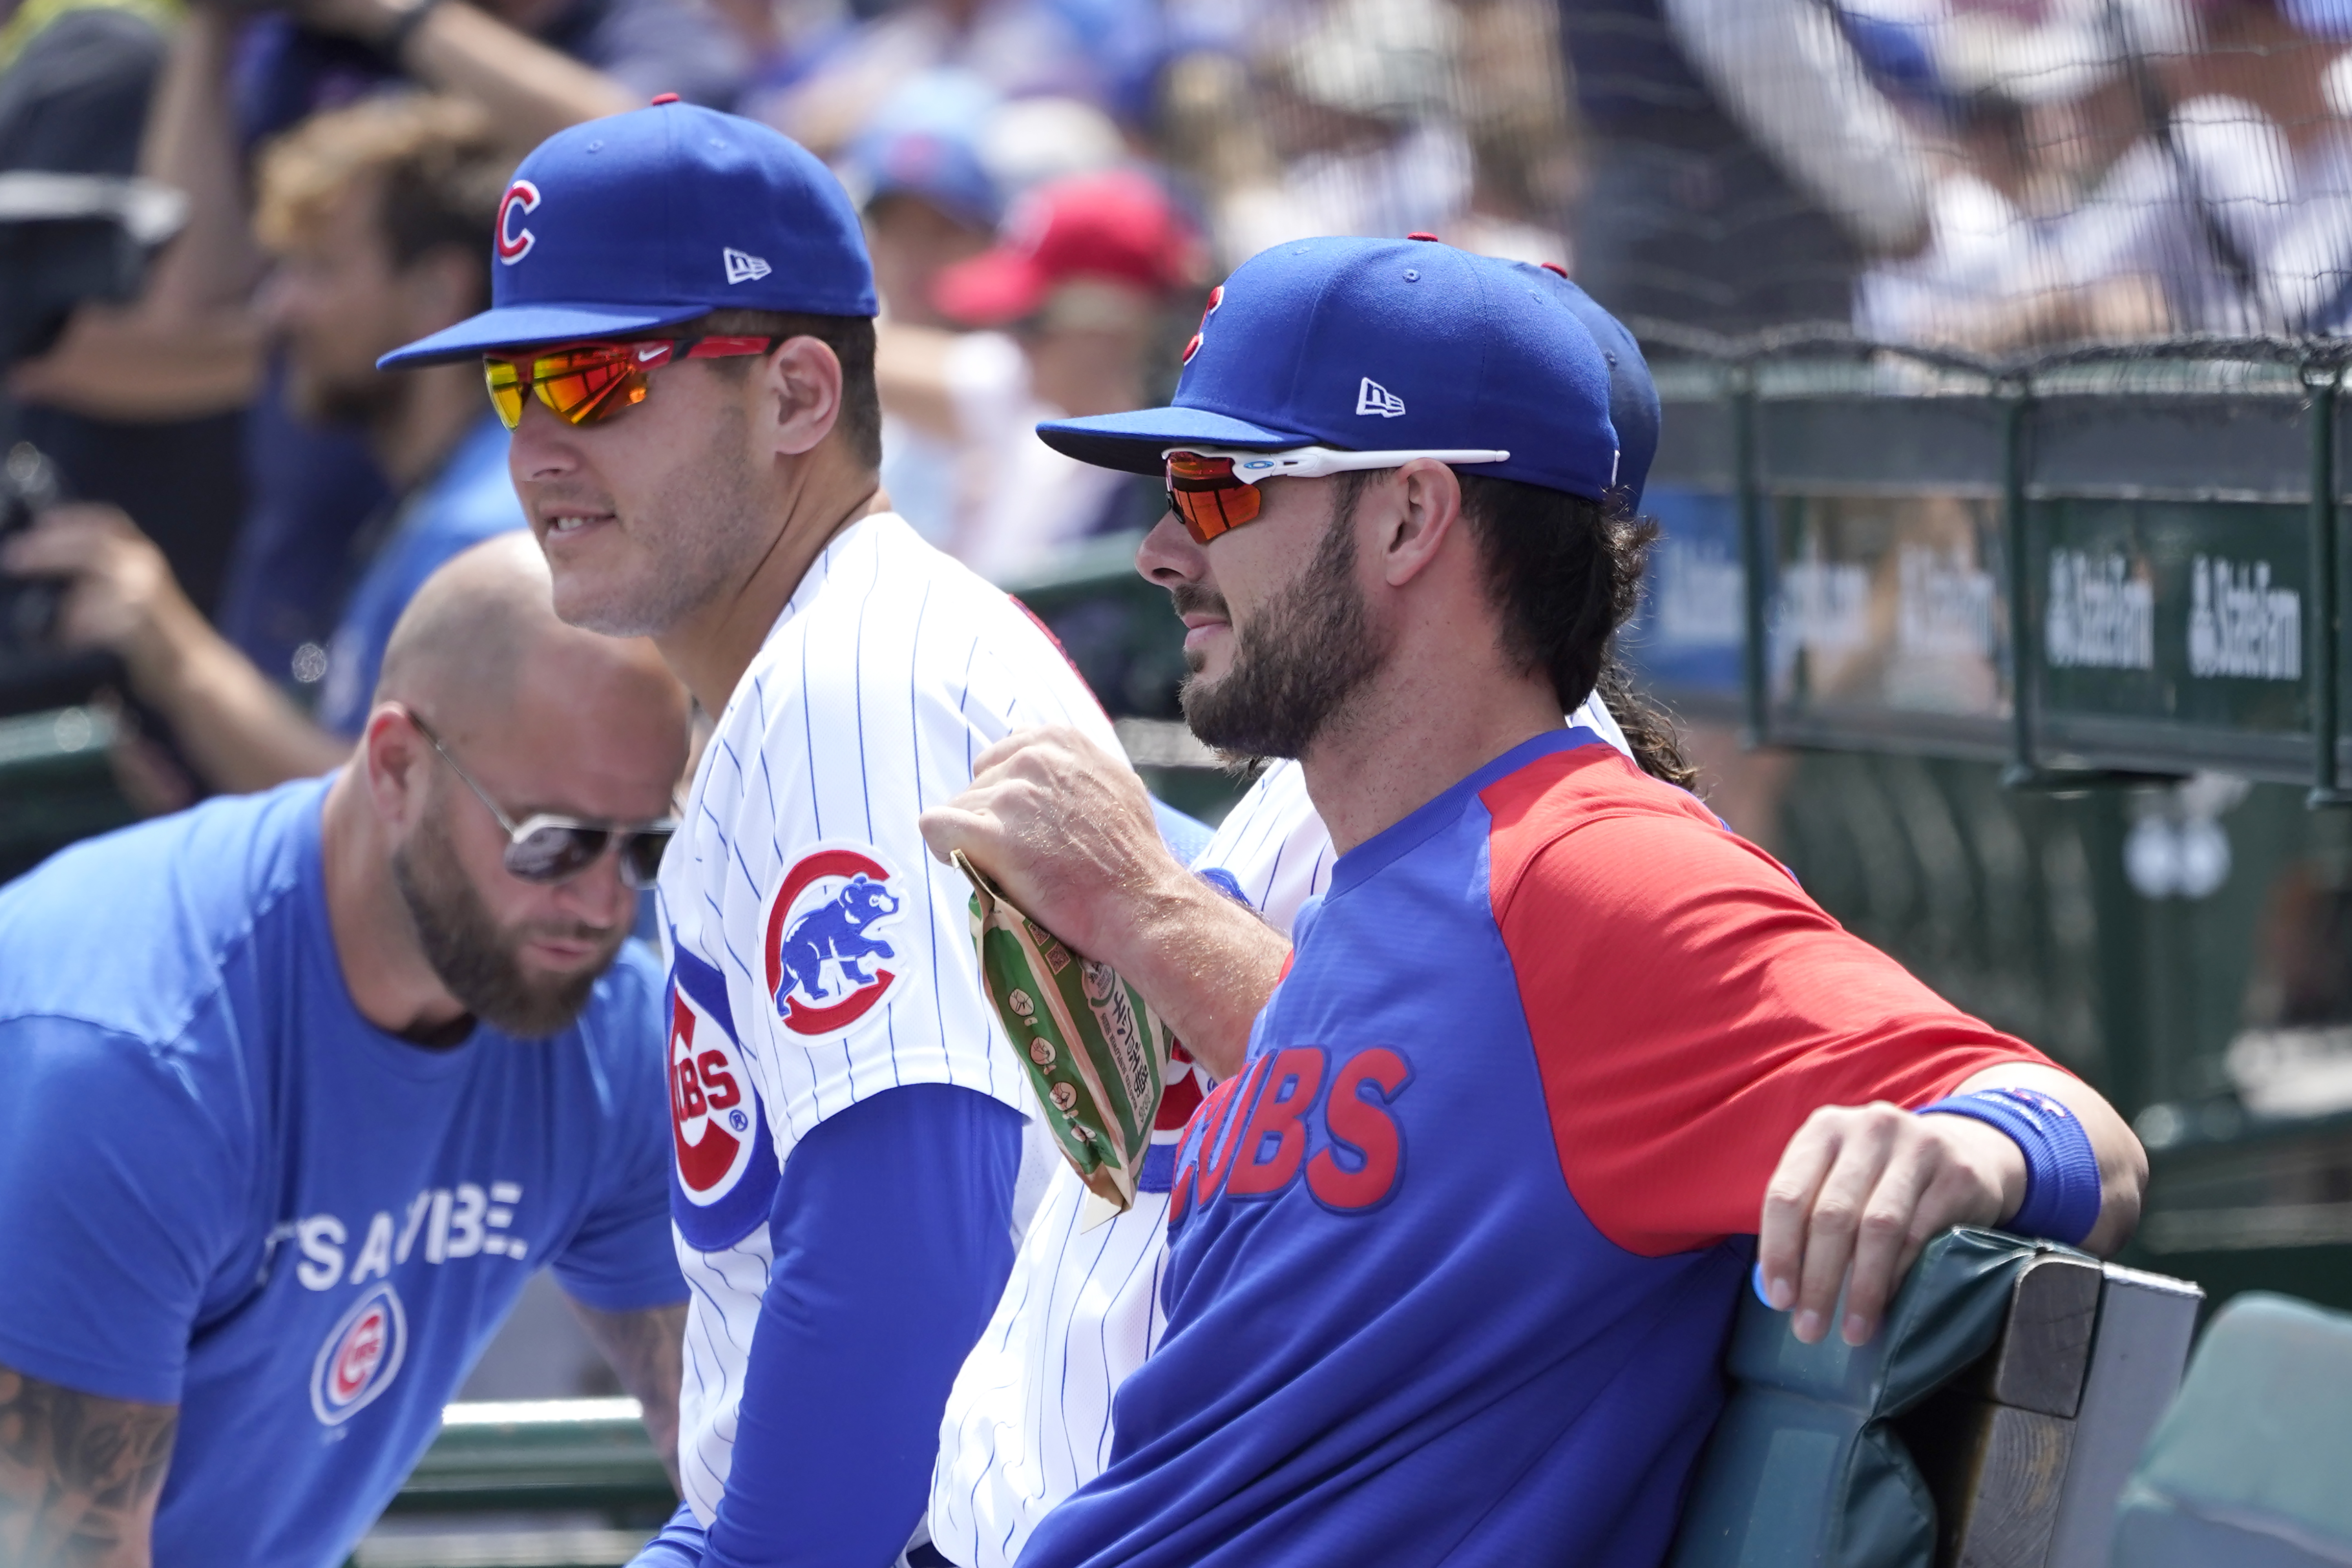 Cubs' Updated Lineup, Payroll After Kris Bryant, Anthony Rizzo, Javier Baez Trades